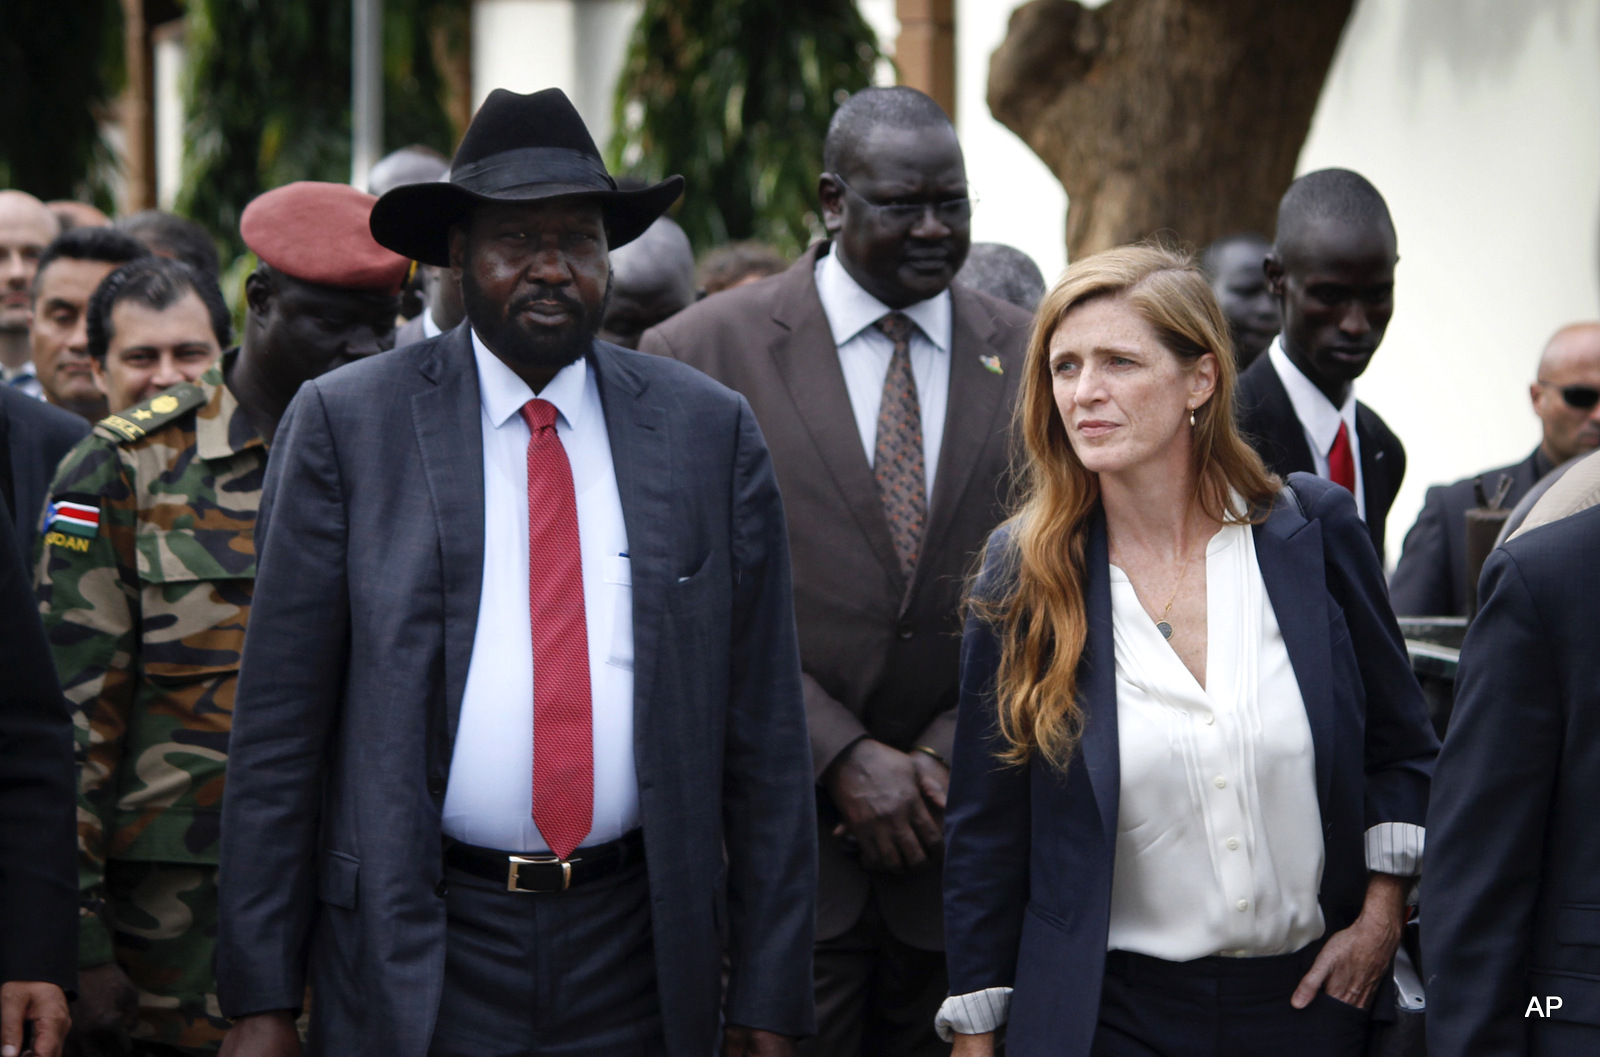 South Sudan's President Salva Kiir, left, walks with U.S. Ambassador to the United Nations Samantha Power, right, and other visiting members of the UN Security Council in the capital Juba, South Sudan, Sunday, Sept. 4, 2016. South Sudan has agreed to the deployment of a 4,000-strong regional protection force approved by the U.N. Security Council after first rejecting the peacekeepers as a violation of its sovereignty.